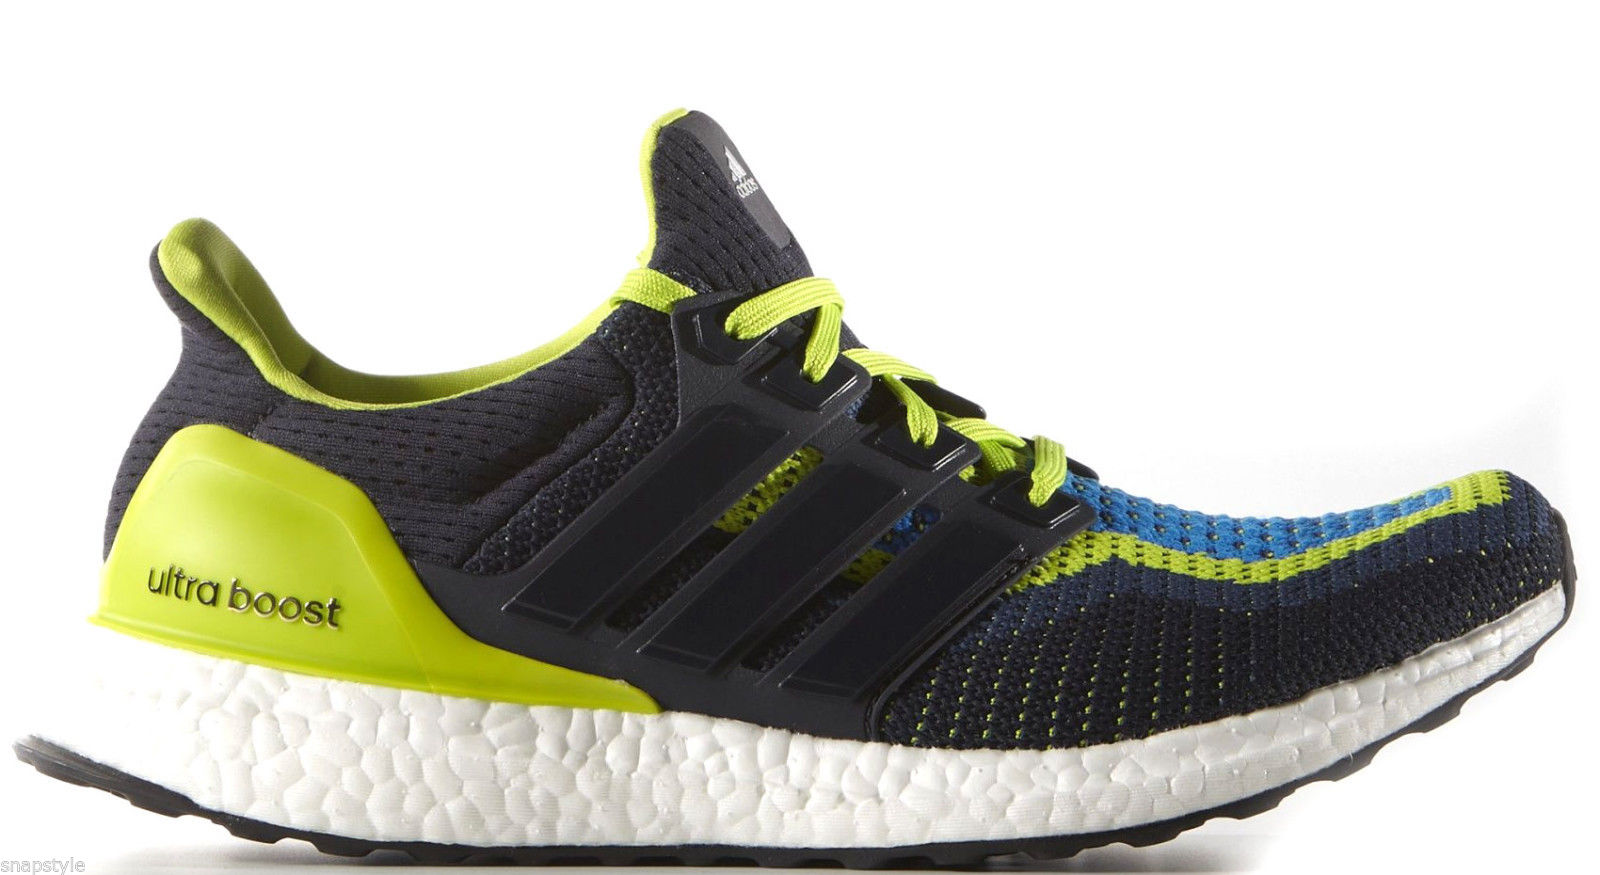 34e5a6368552a Extremely comfortable running shoes with the Adidas beloved Boost  Technology. The superior smooth outsole and elastic heel provides ultimate  comfort and ...